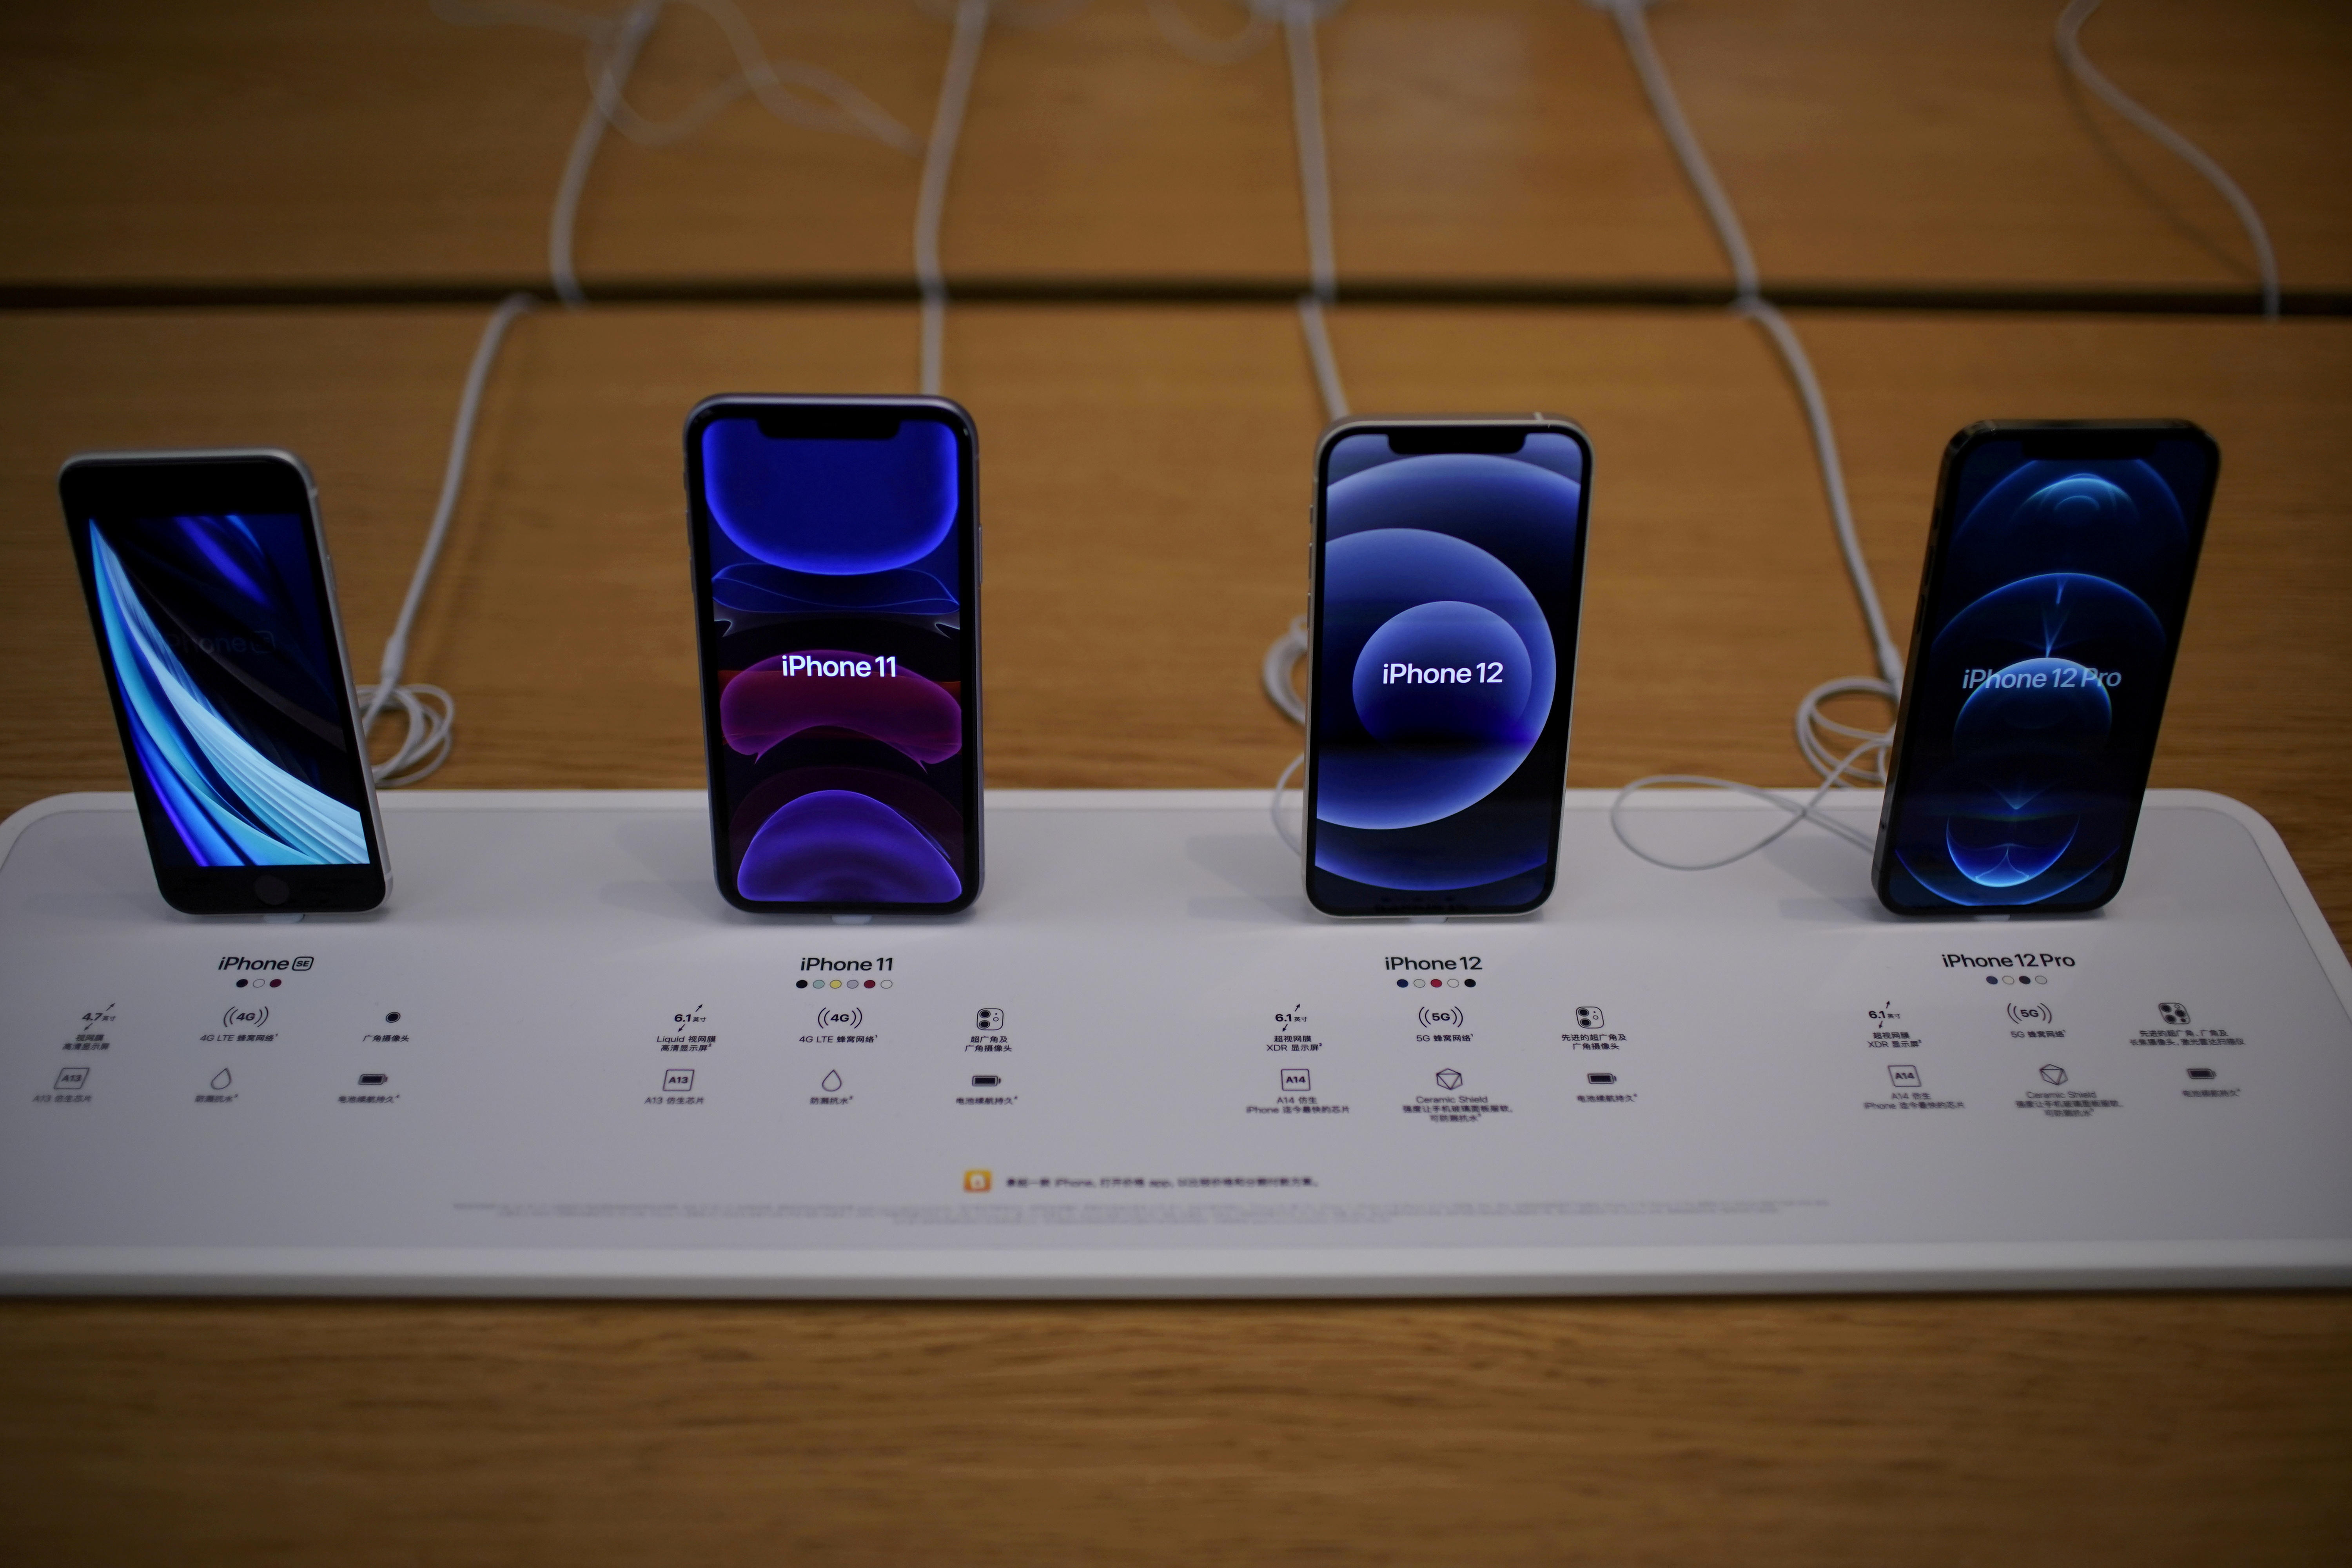 Apple's 5G iPhone 12 and iPhone 11 are seen at an Apple Store in Shanghai, China October 23, 2020. REUTERS/Aly Song/File Photo